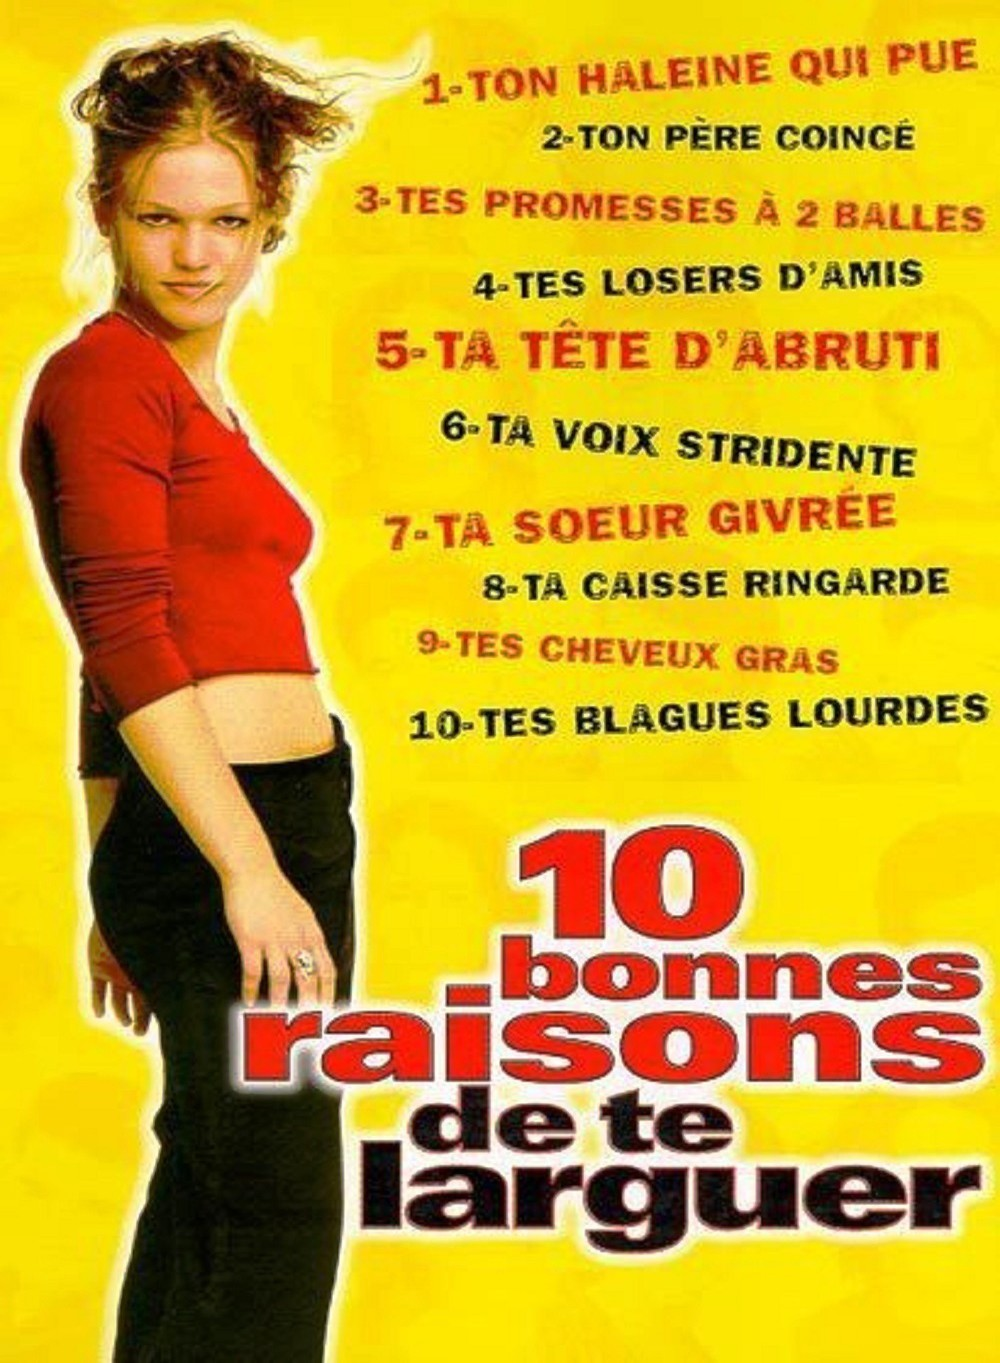 10 bonnes raisons de te larguer Disney touchstone affiche poster